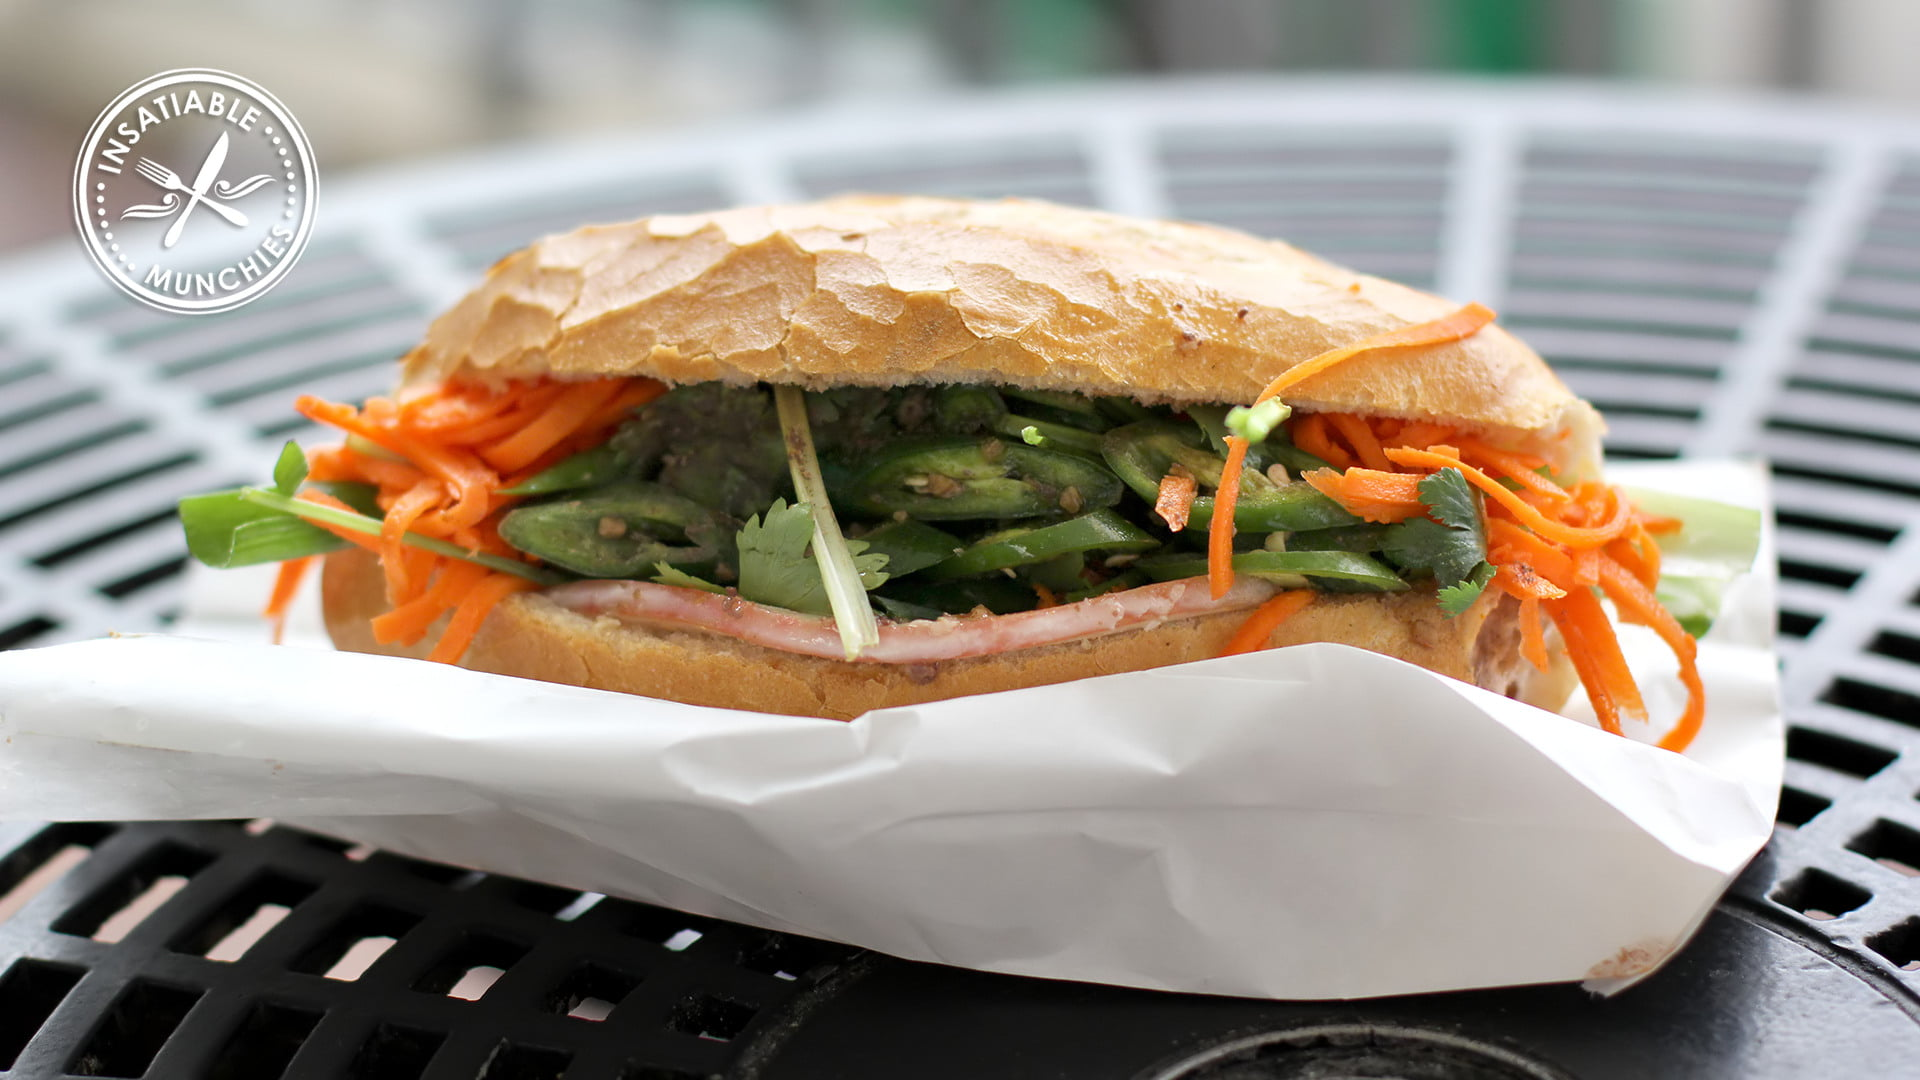 Vietnamese Pork Roll with Cucumber, Coriander, Spring Onion, Mayo, Paté, and plenty of pickled carrots